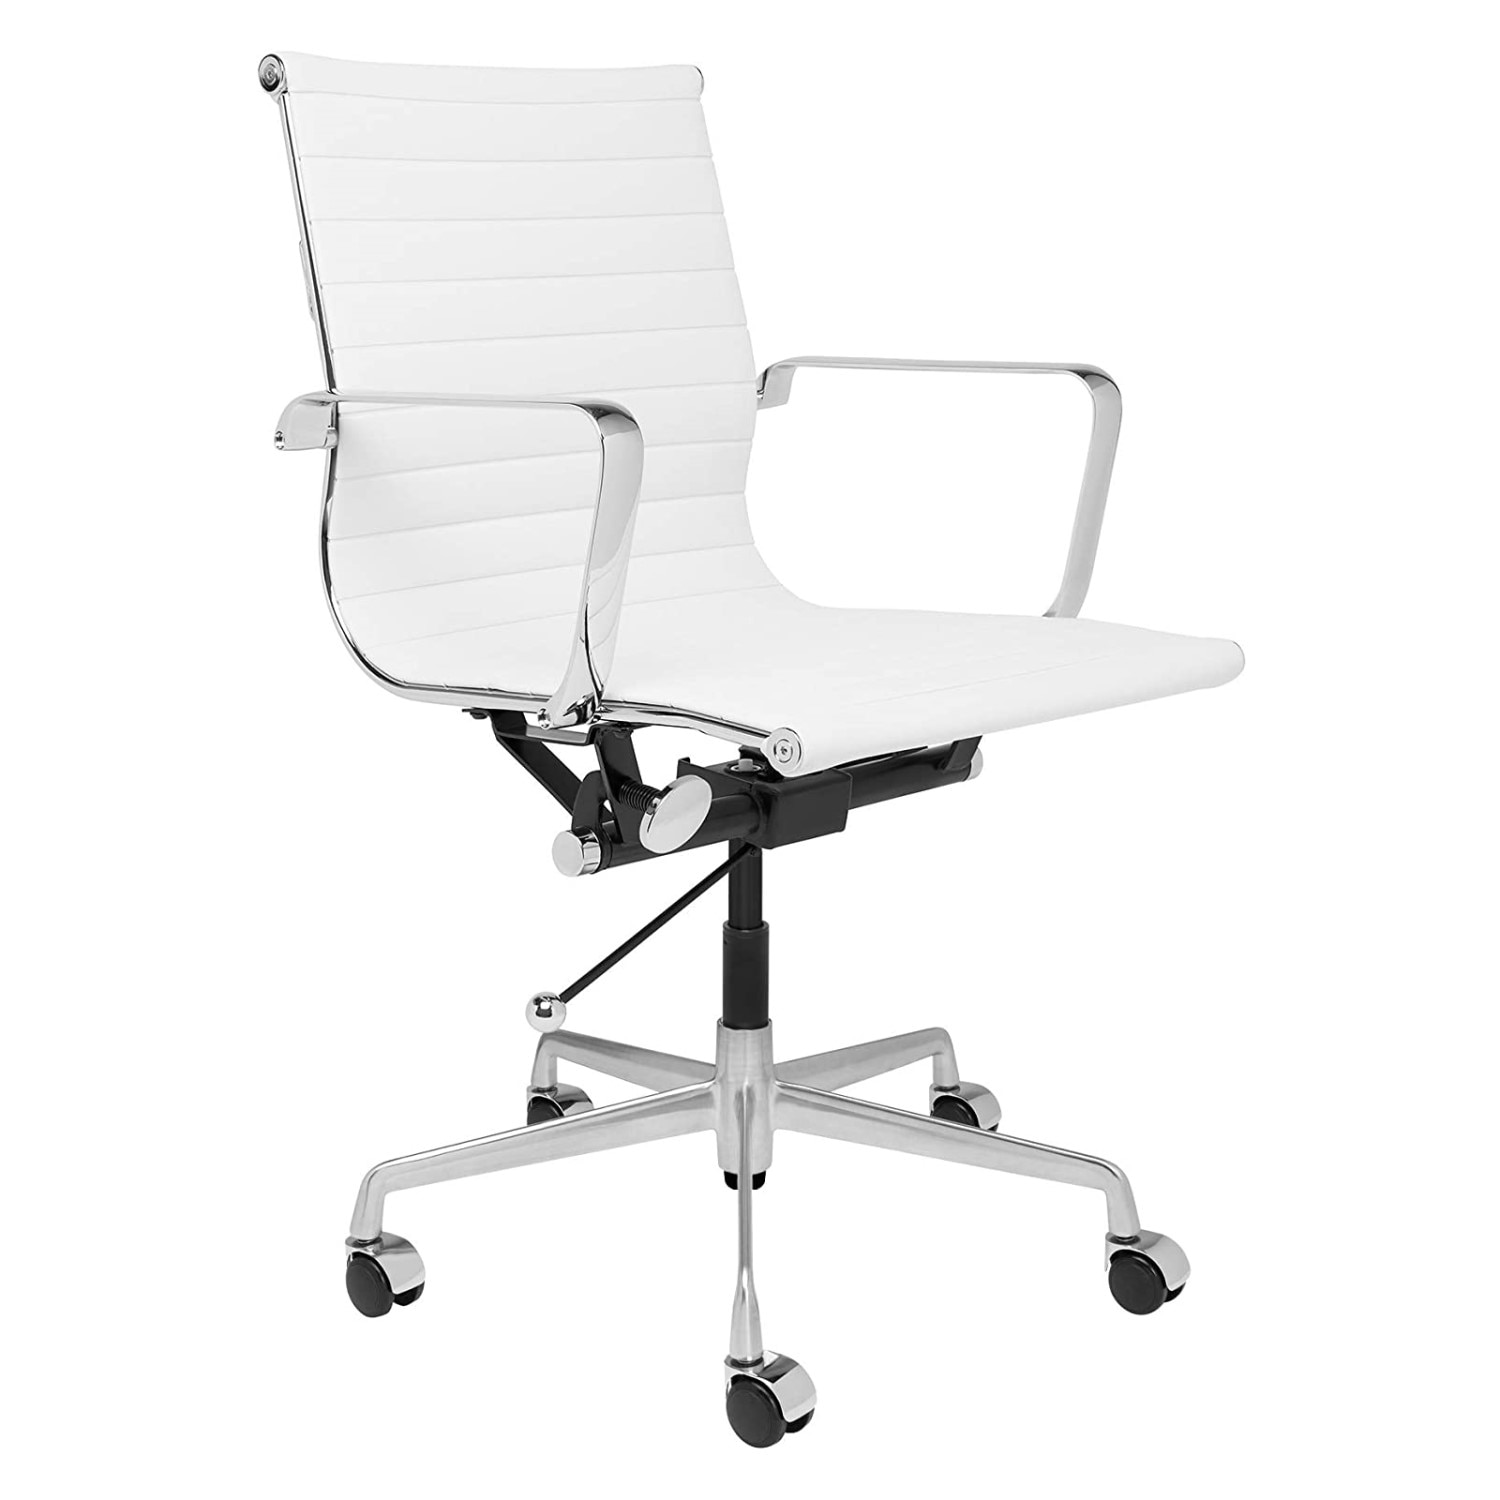 H9a7f601836324c5f96c4e082cc8e2459G - Furgle Executive Office Chair Mid Back PU Leather with Arms Rest Tilt Gaming Chair Adjustable Height with Wheels Swivel Chairs